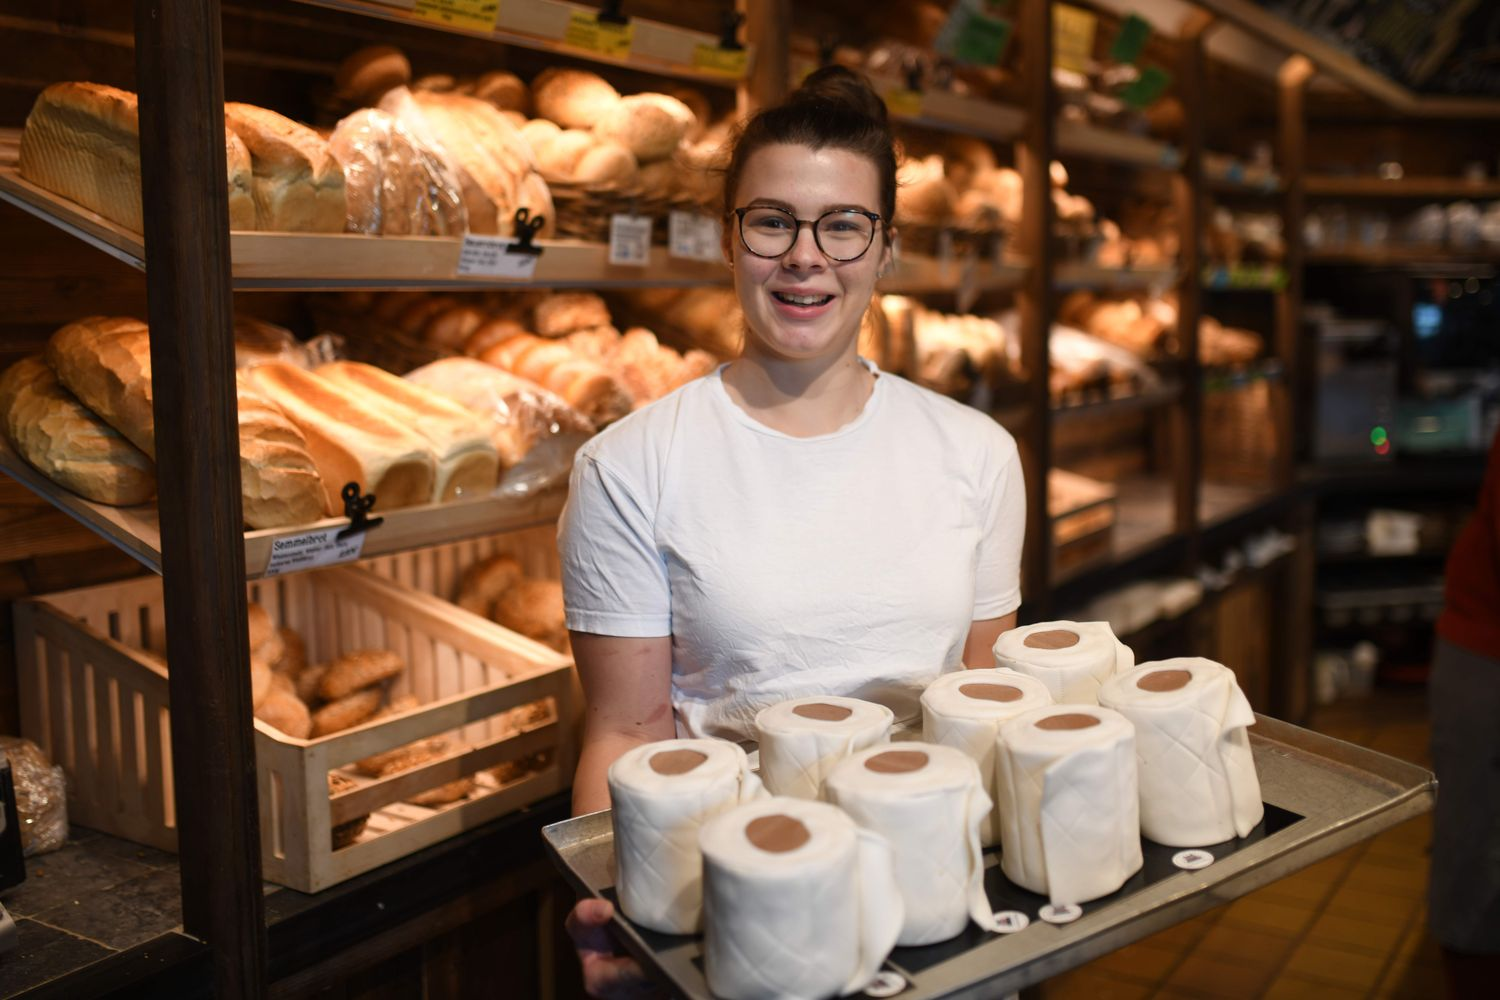 Apprentice Andrea Schulz presents a tablet with toilet paper-shaped cakes at the bakery Schuerener Backparadies in Dortmund, western Germany, on Thursday. The bakery of owner Tim Kortuem sells toilet paper cakes, which are spread with cream and wrapped in fondant. The sweet toilet paper rolls have become a 'bestseller' during the virus crisis. (AFP photo)